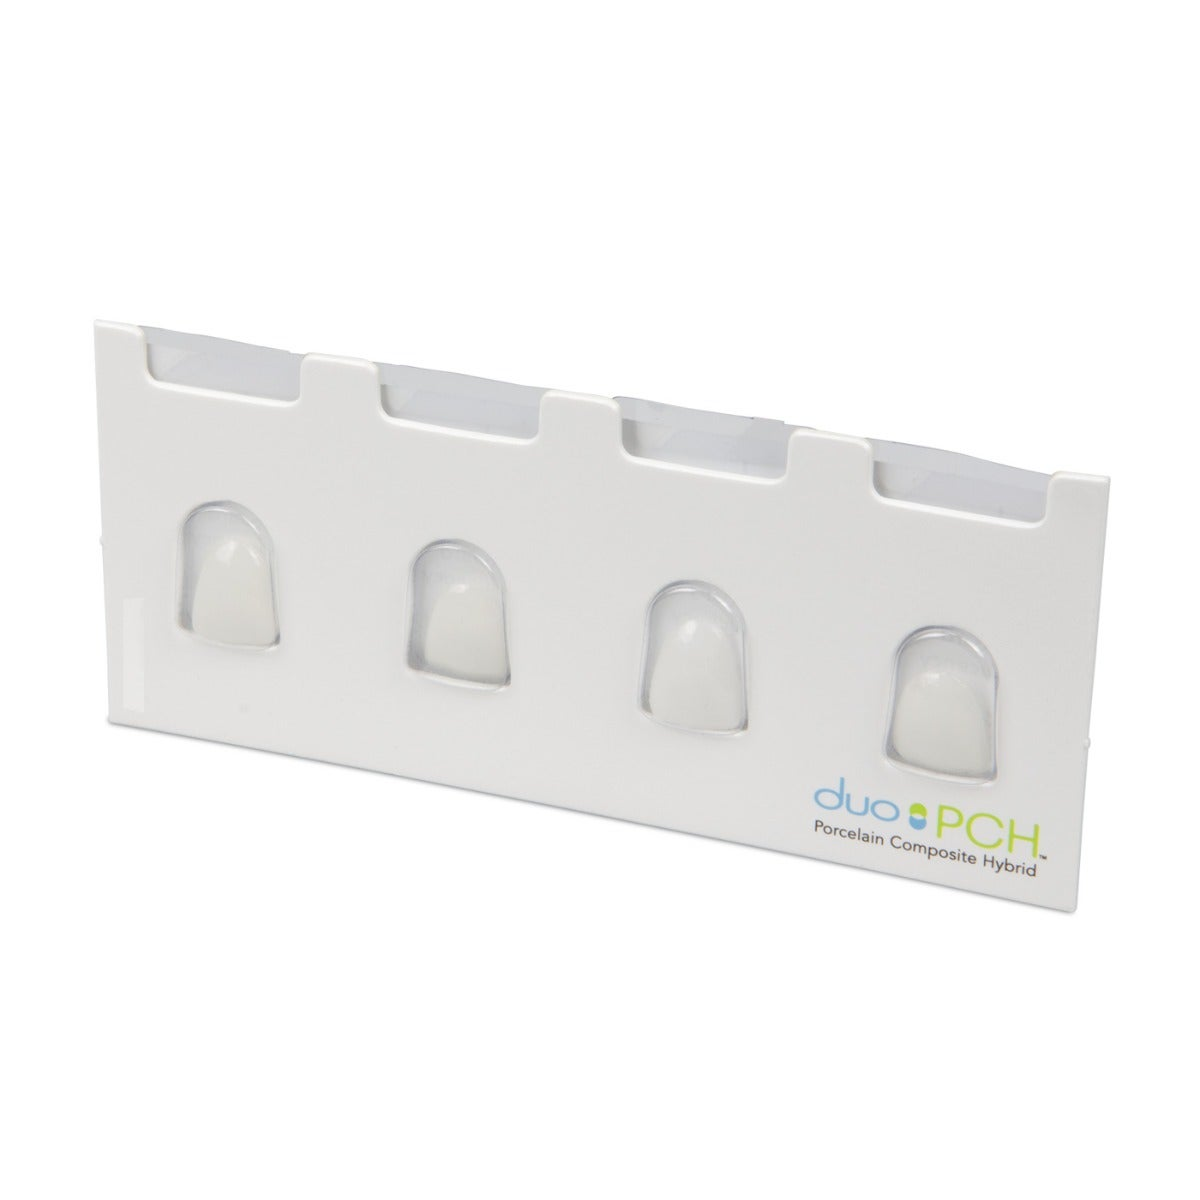 Duo PCH - Small Centrals #8/9 - B1 Standard Translucency